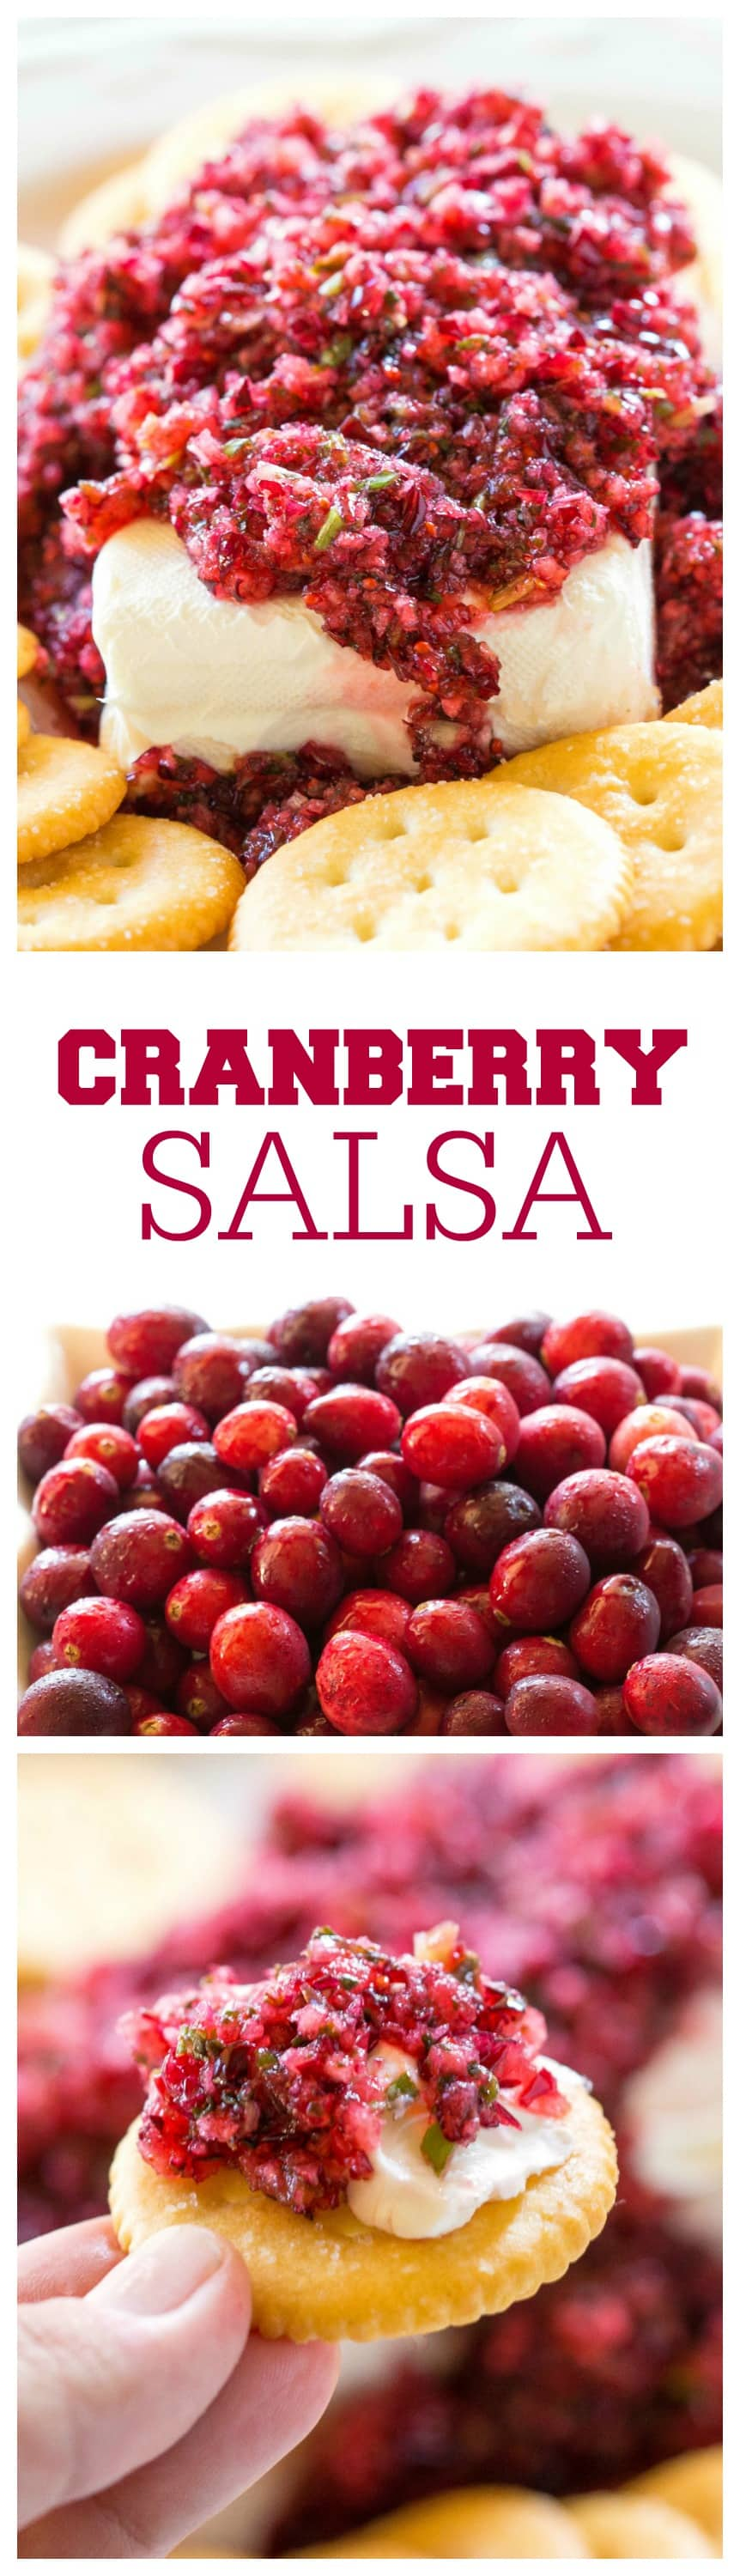 Fresh Cranberry Salsa served over cream cheese - this spicy and sweet combo is always a hit at parties. the-girl-who-ate-everything.com